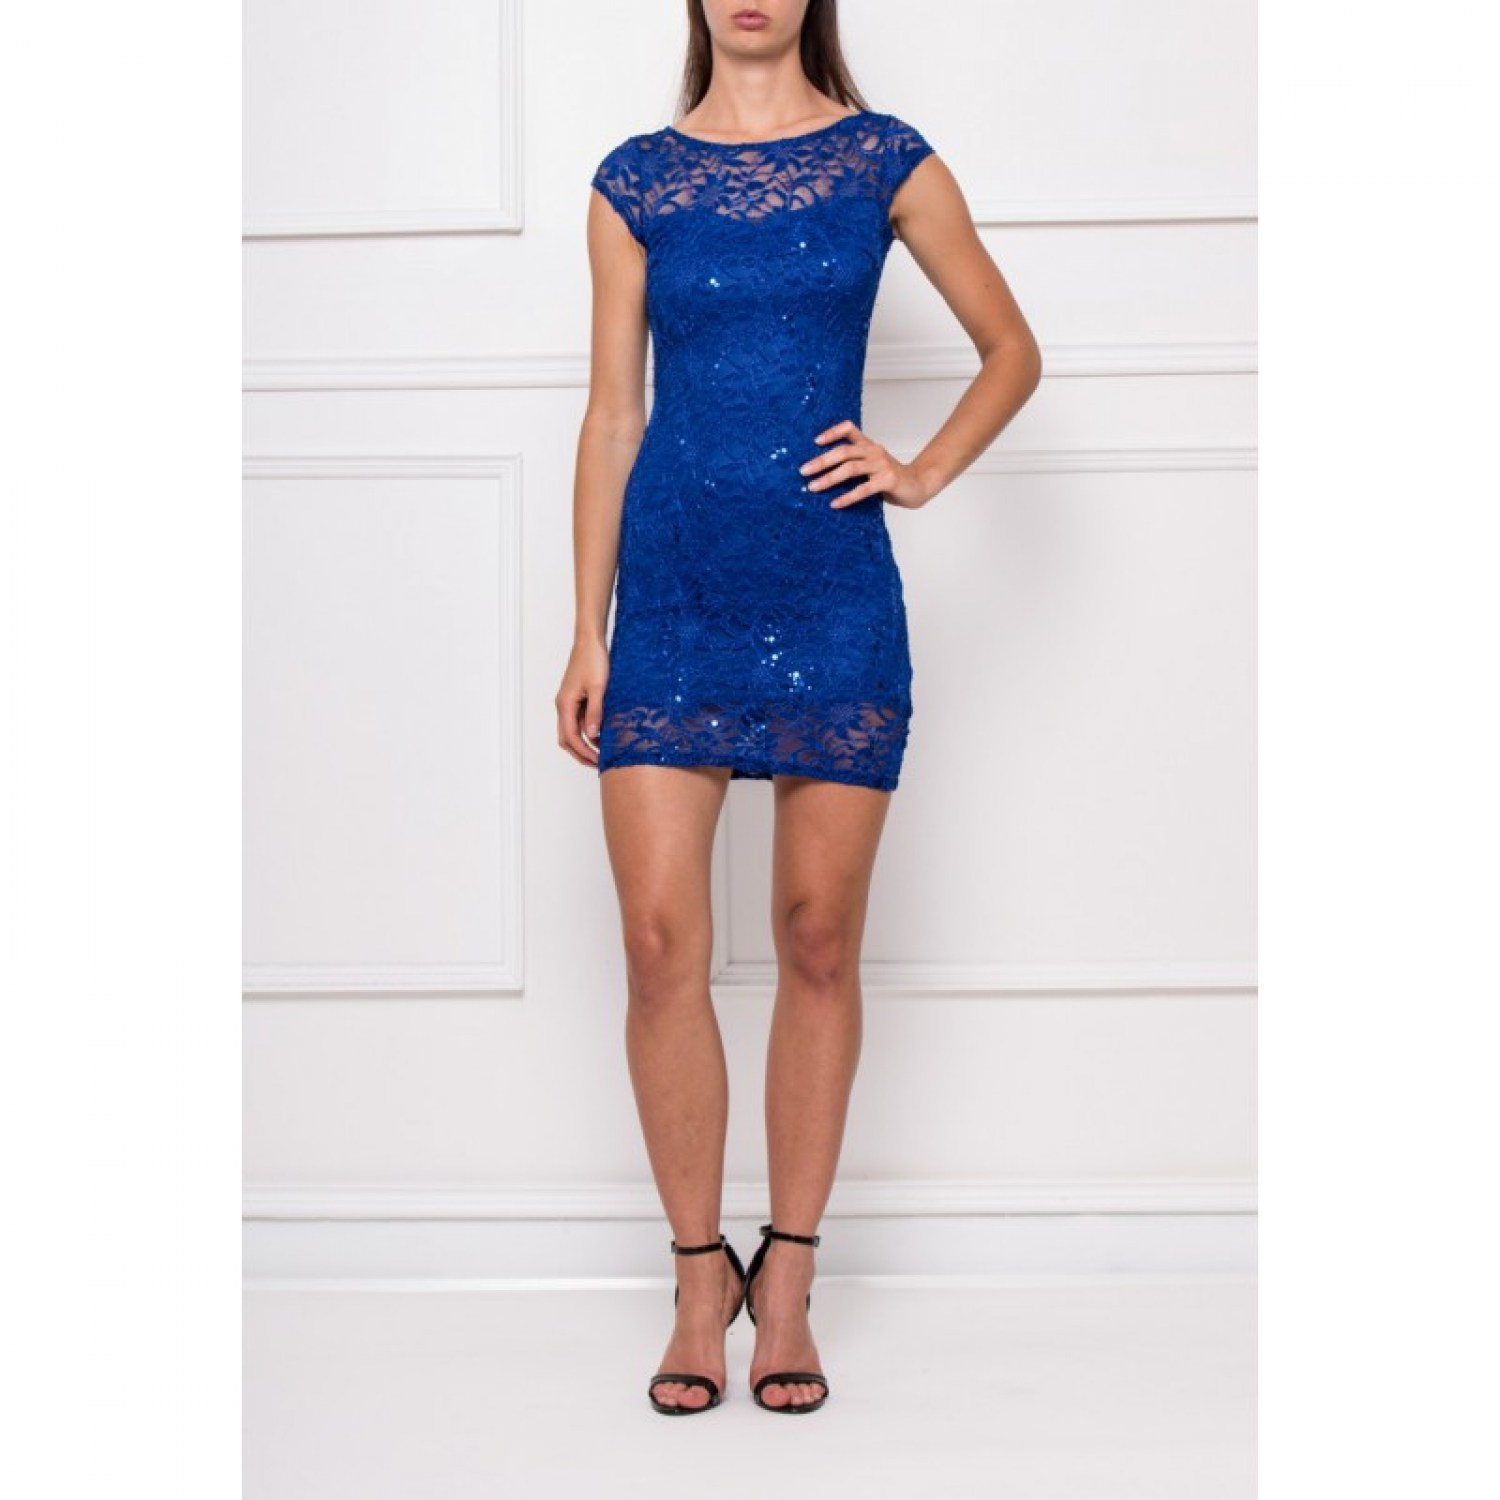 Betaalbare Cocktailjurk.Cocktail Dress 21 Discount Eva En Lola Mini Dress